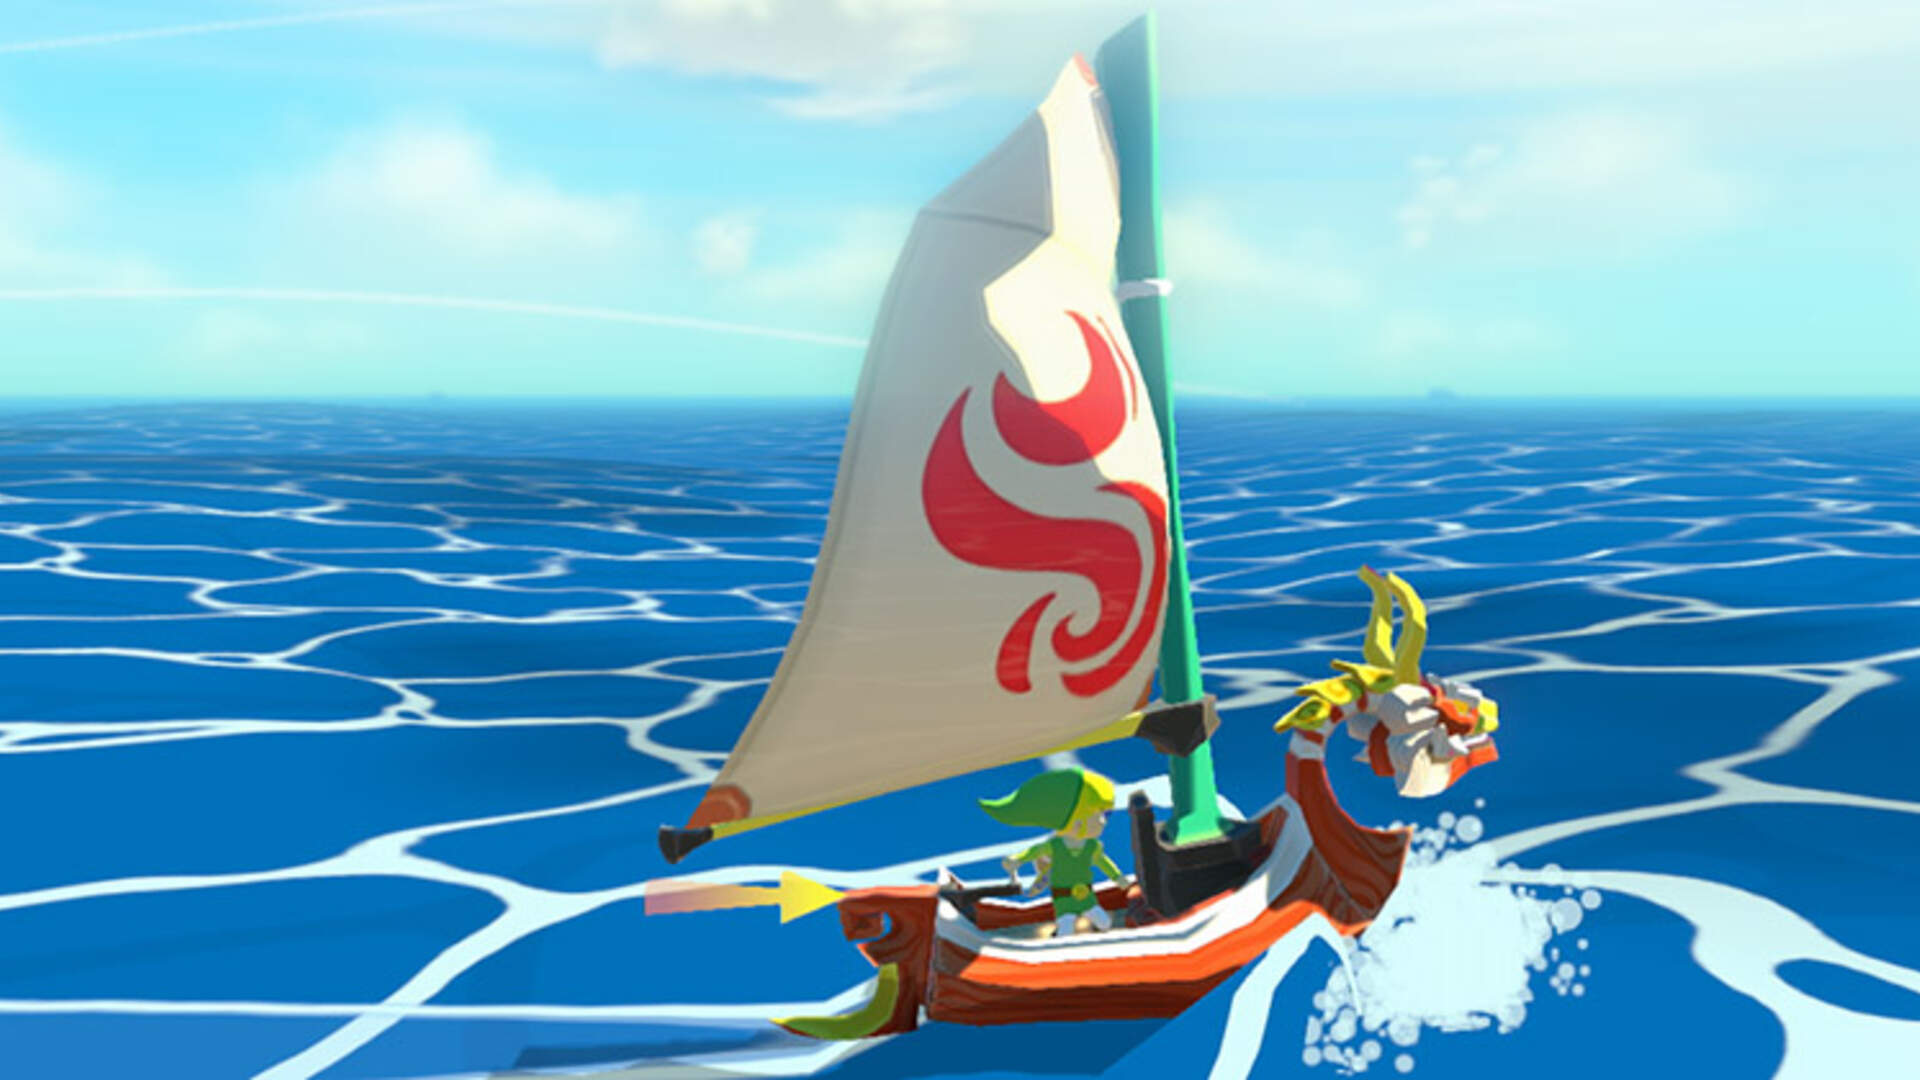 Mario + Rabbids Director Once Pitched a Game Boy Advance Demo of Wind Waker